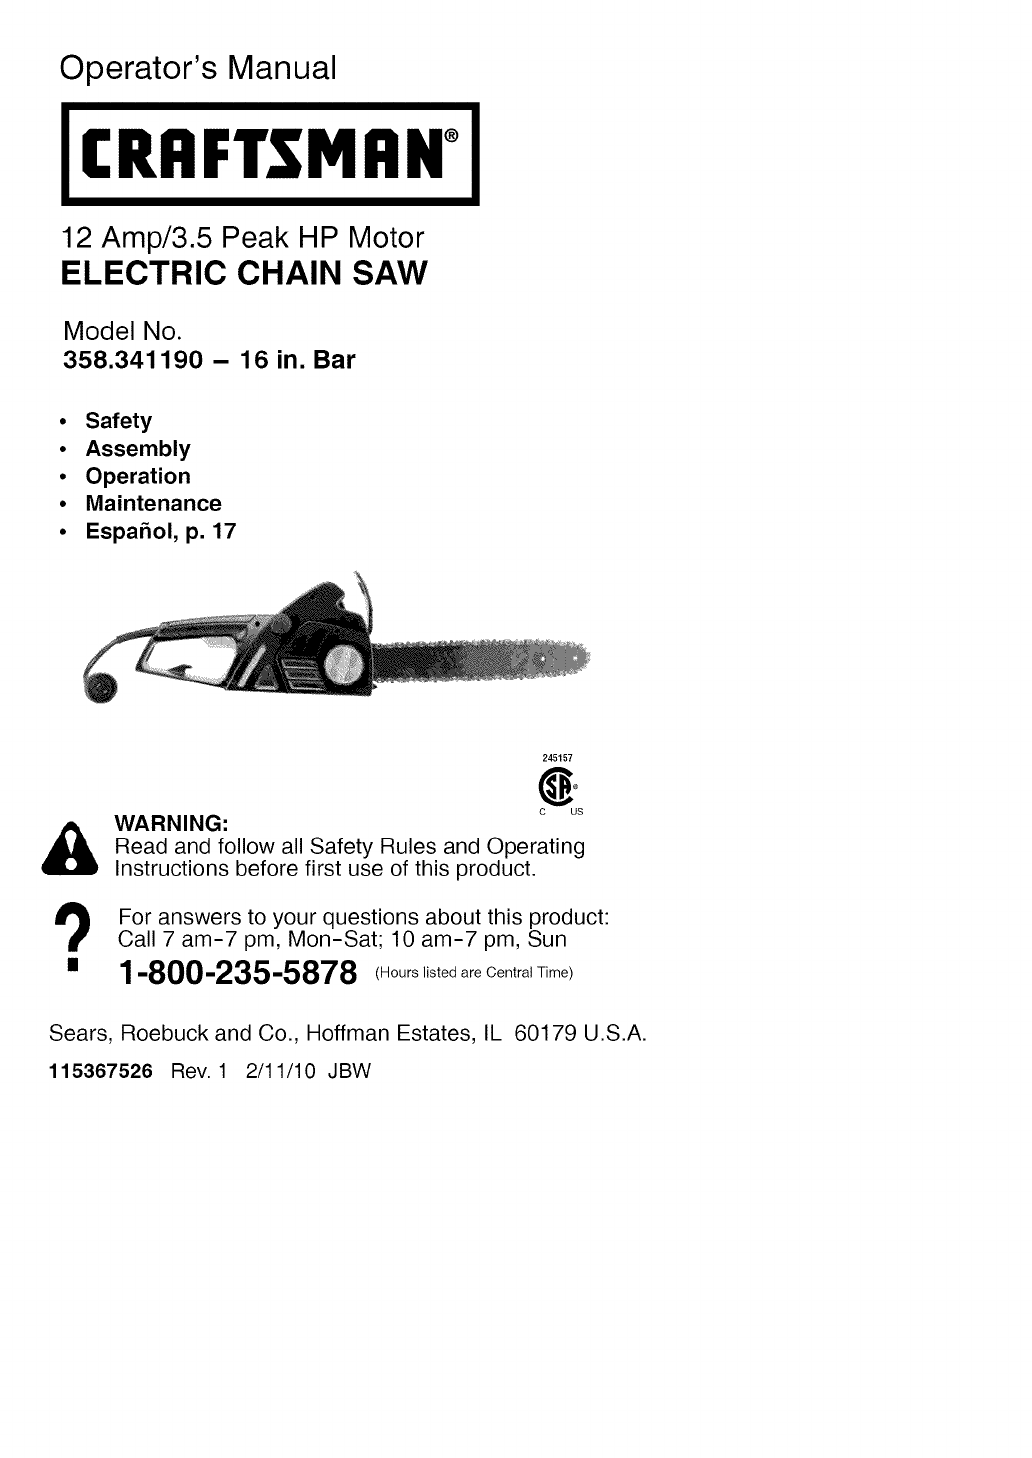 craftsman 358341190 user manual electric chain saw manuals and rh usermanual wiki Earthwise 14 Electric Chain Saw Craftsman 20 Chainsaw Manual